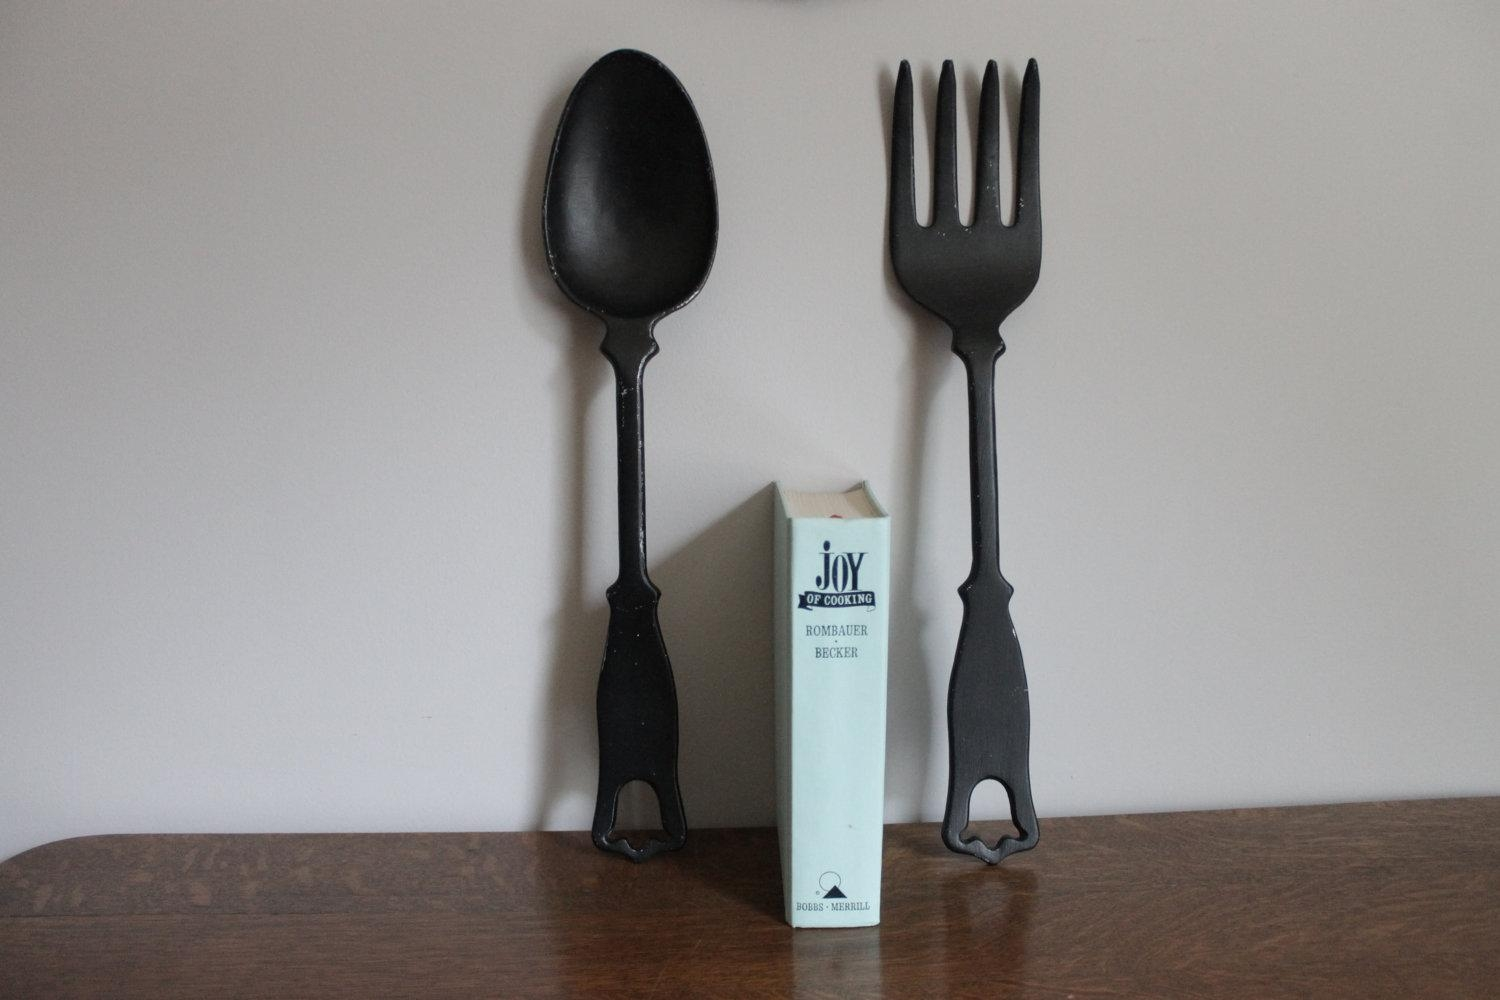 Big Fork And Spoon Wall Art Galleries In Fork And Spoon Wall Decor With Big Spoon And Fork Wall Decor (Image 2 of 20)